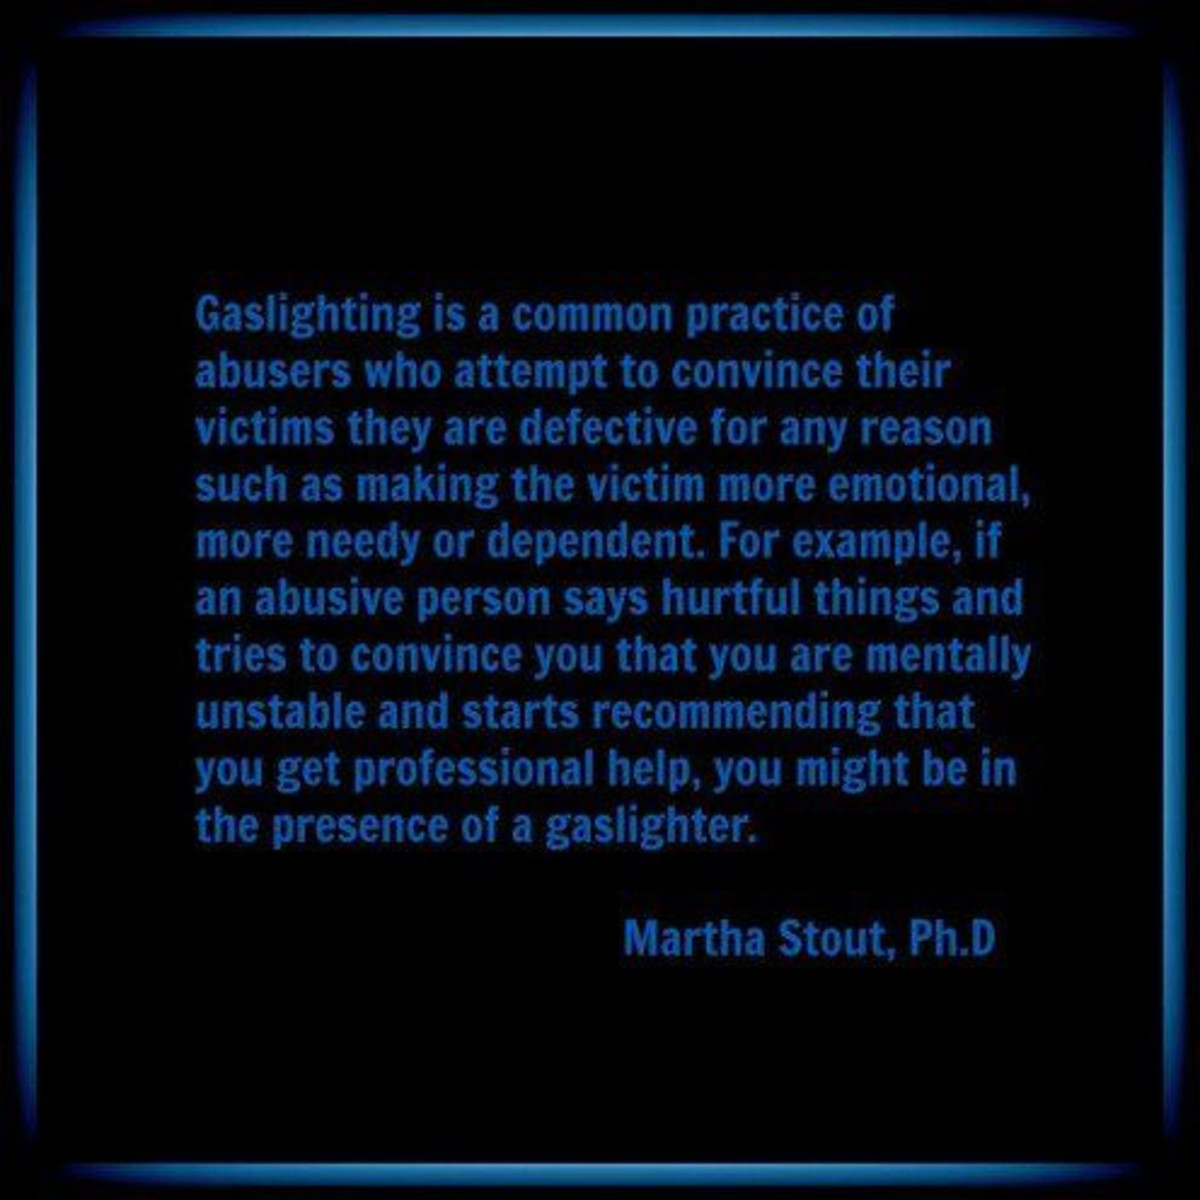 Gaslighting definition by Dr. Martha Stout, author of The Sociopath Next Door